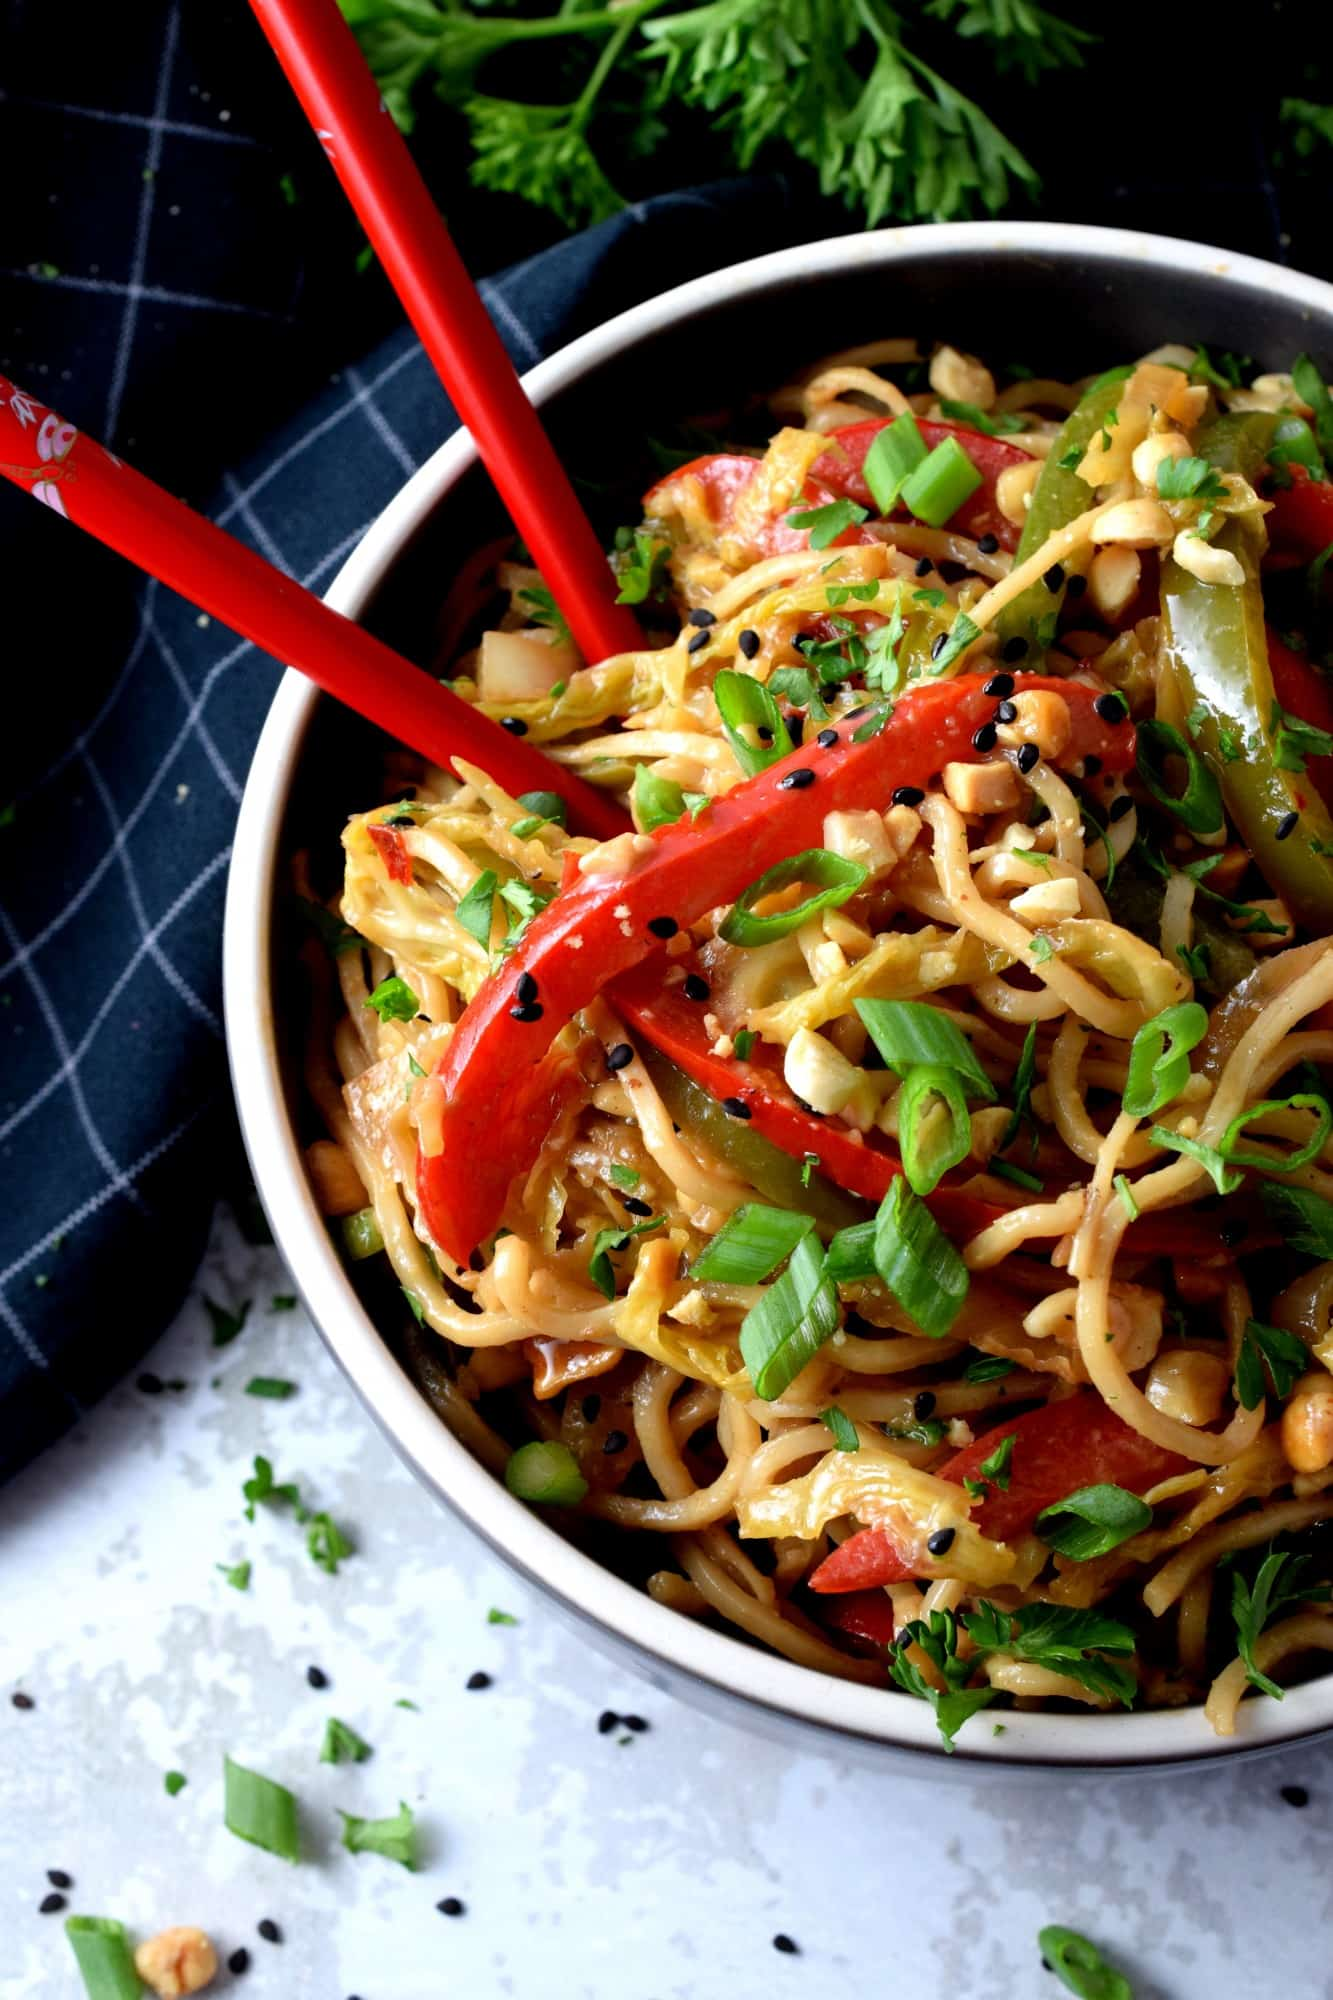 Easy Spicy Vegetable Noodles